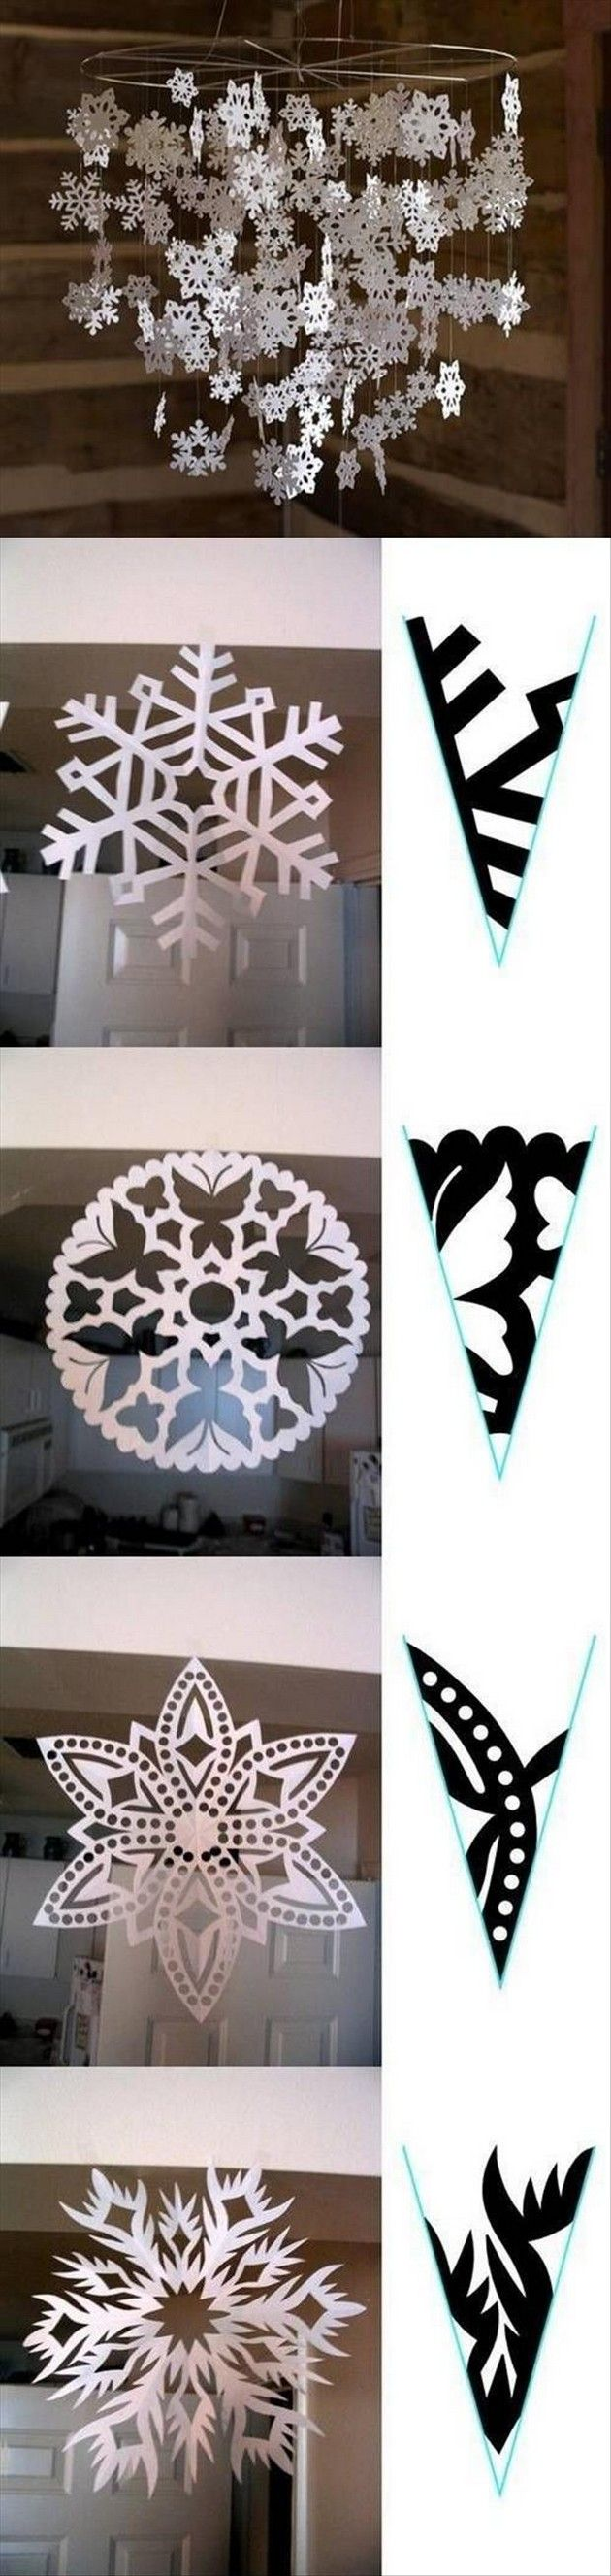 Craft & DIY Ideas | Snowflake